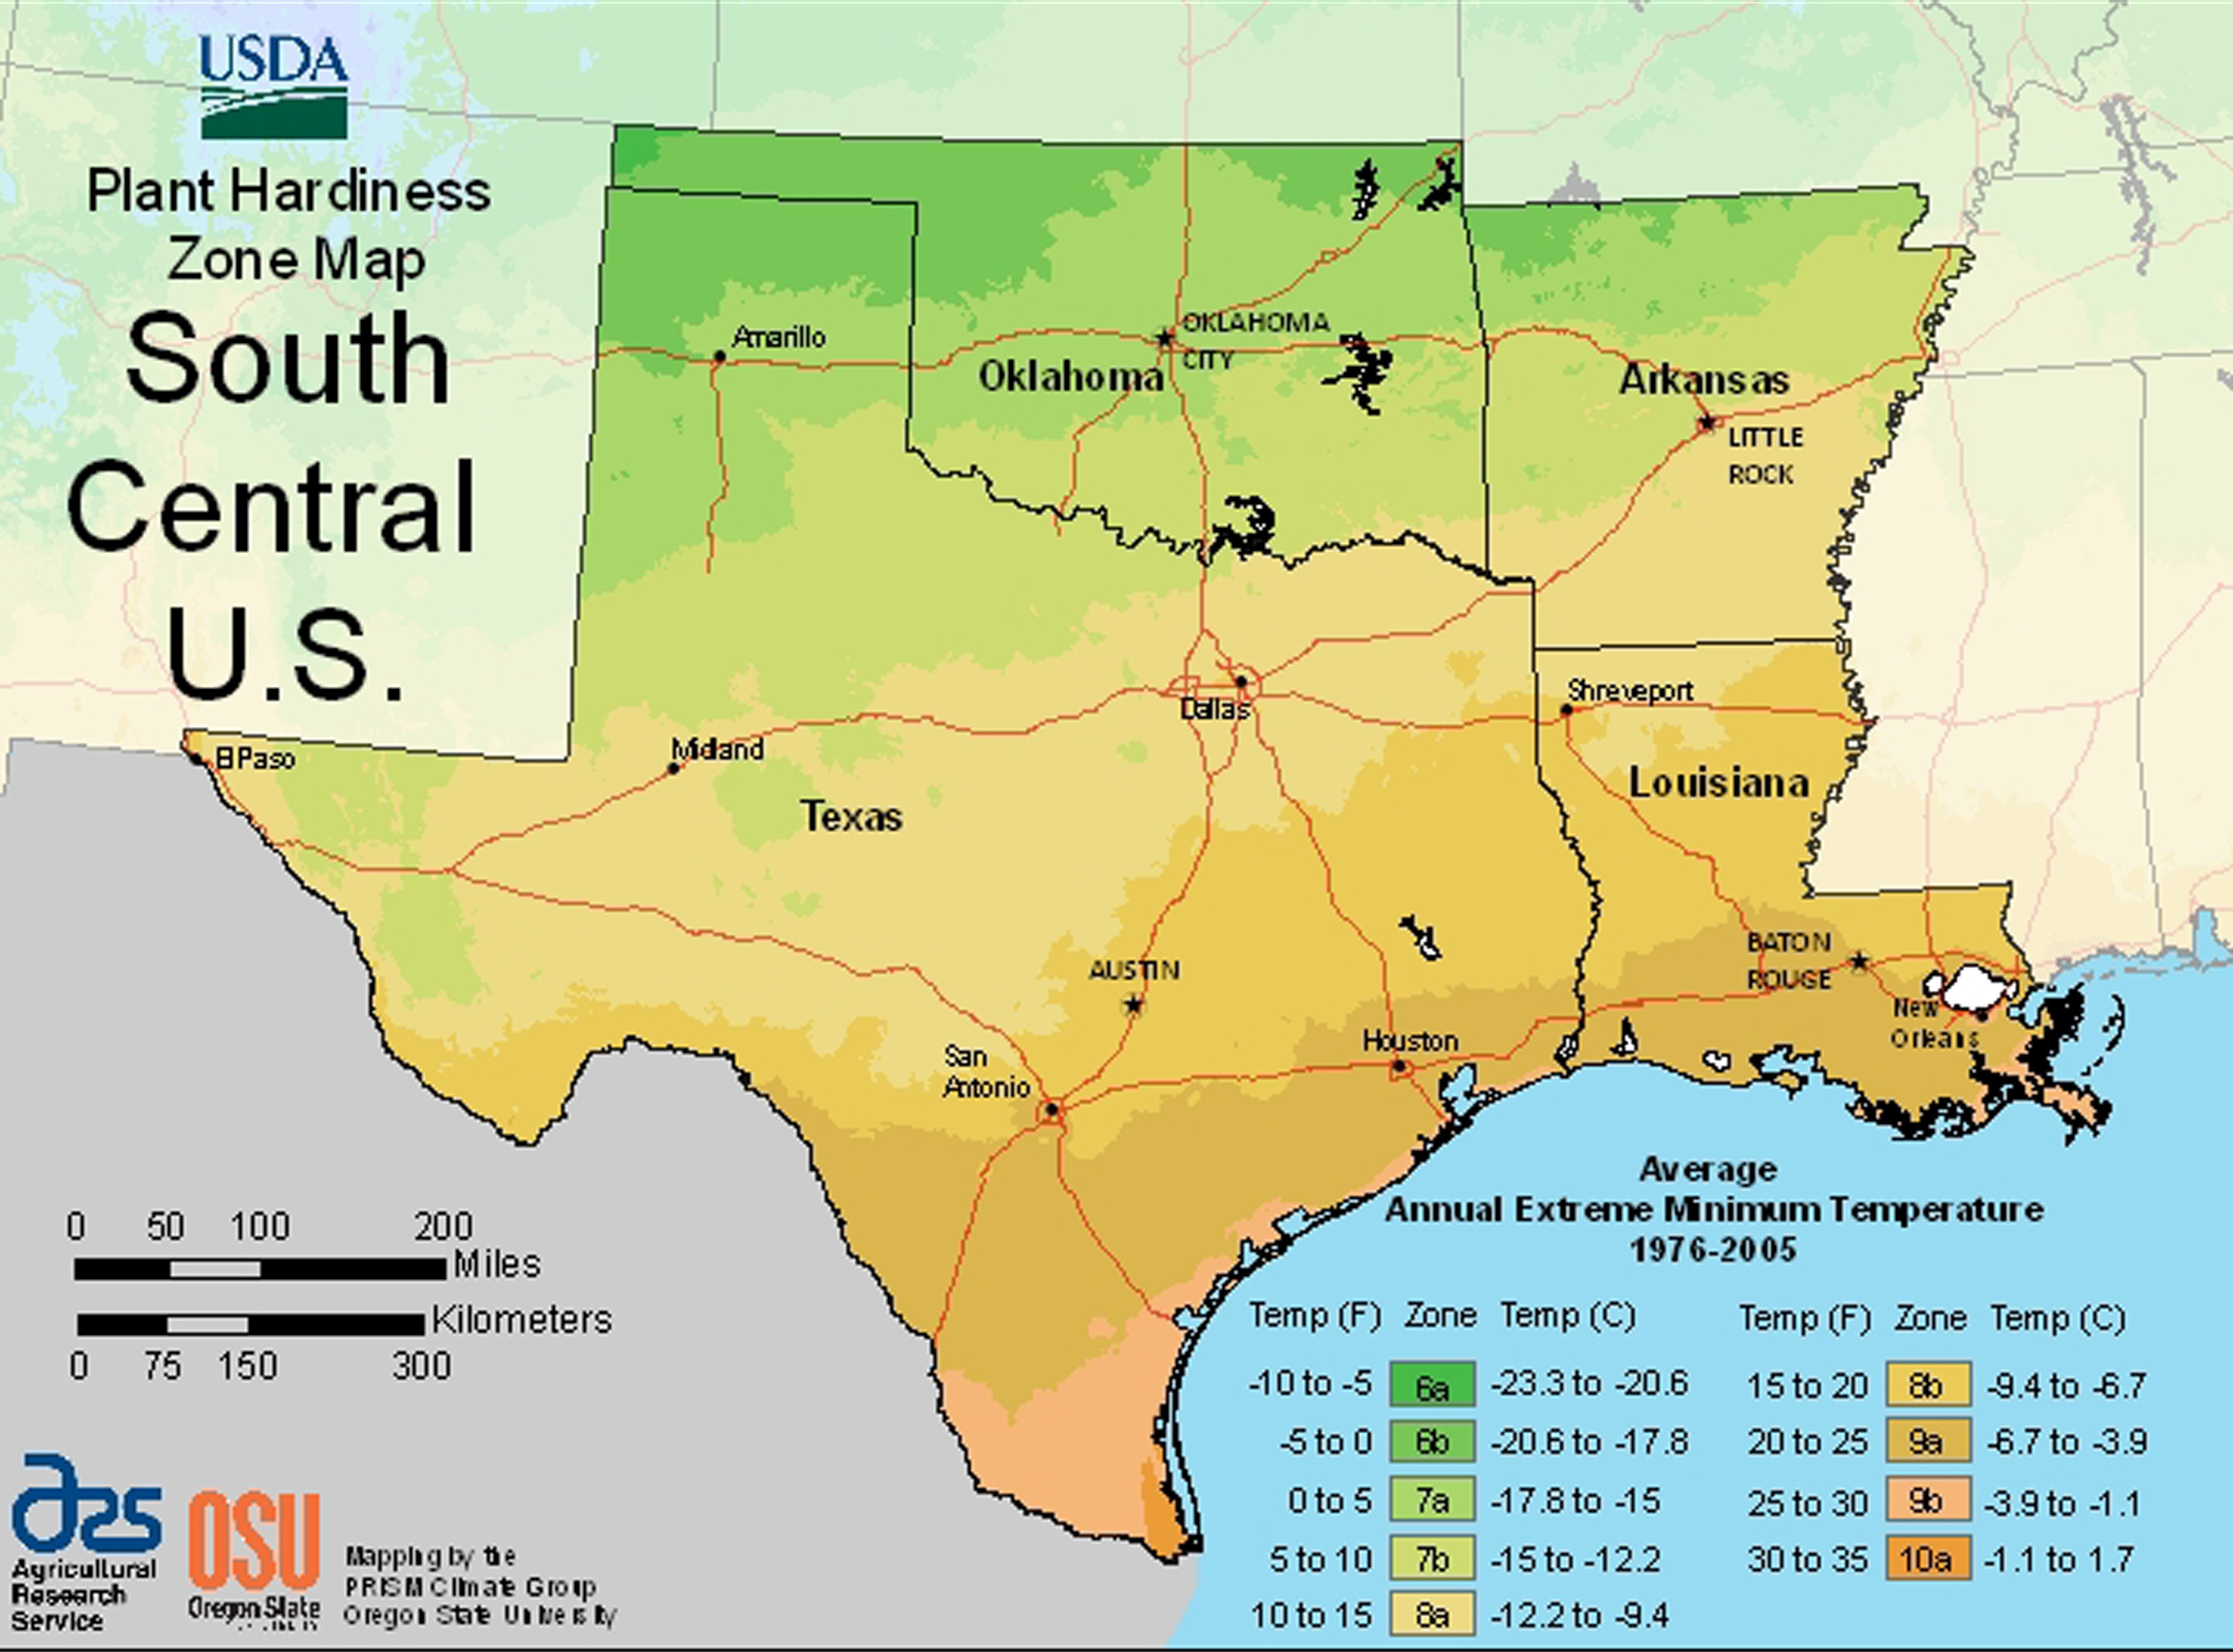 Us Growing Zone Map Printable Planting Zone Map Elegant Us Climate - Texas Growing Zone Map